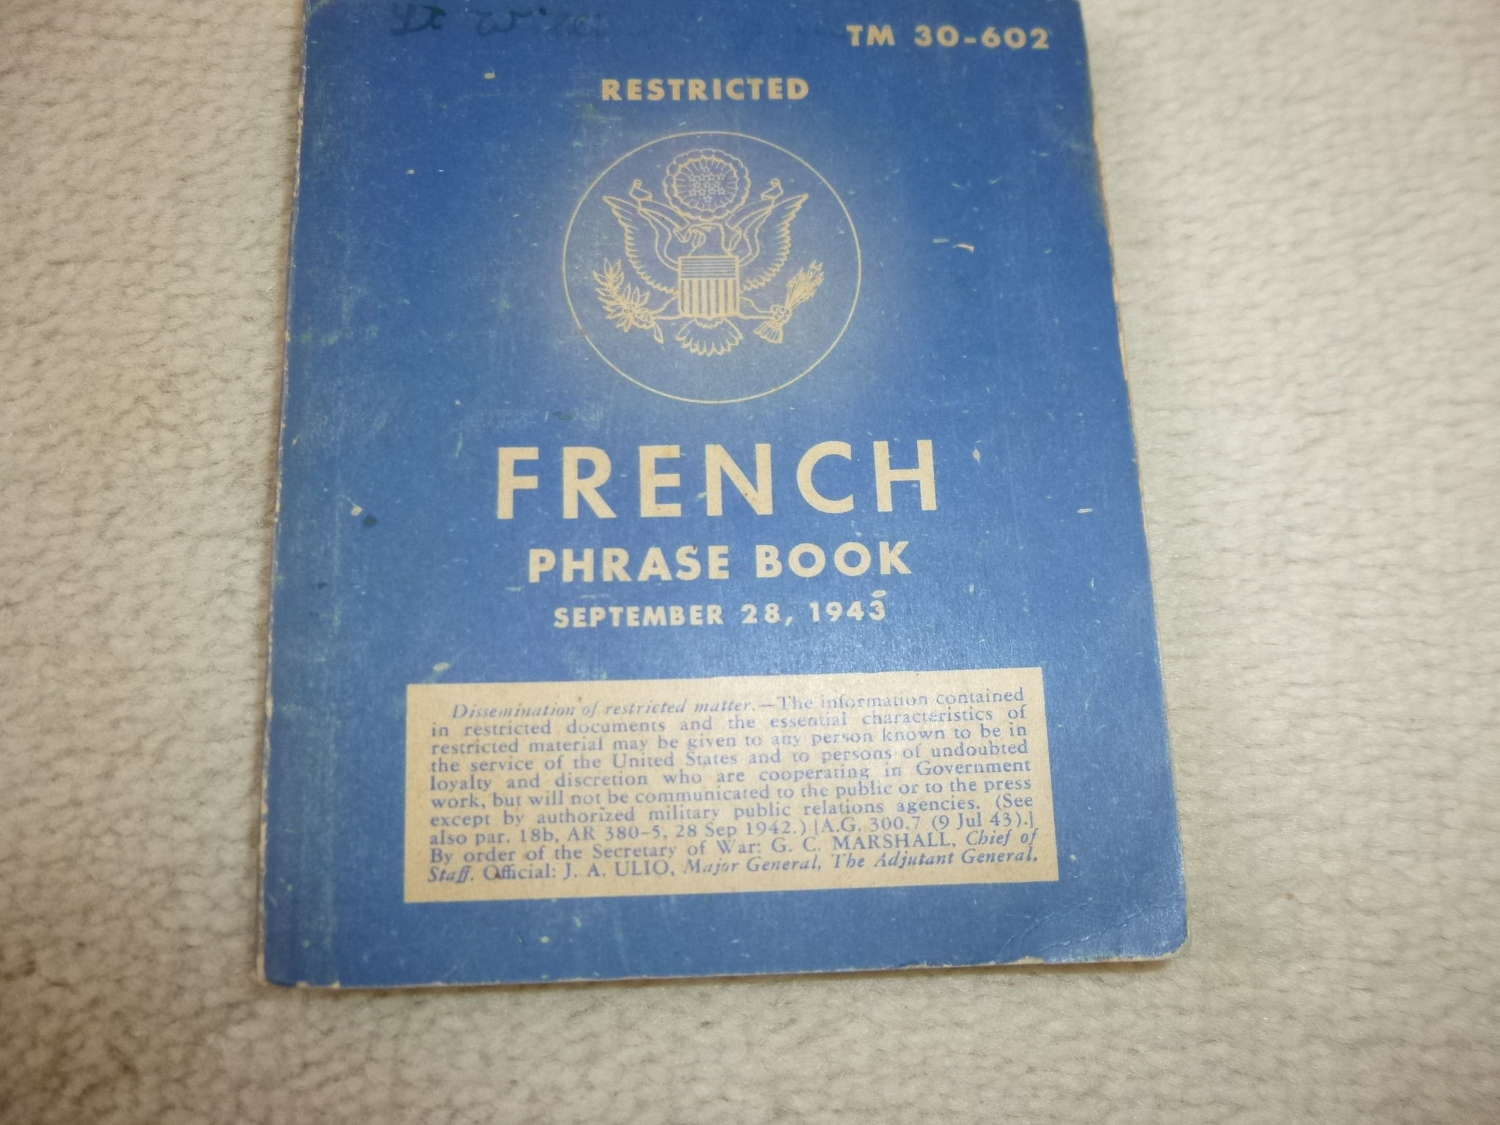 US Army TM30-602 French Phrase book Manual